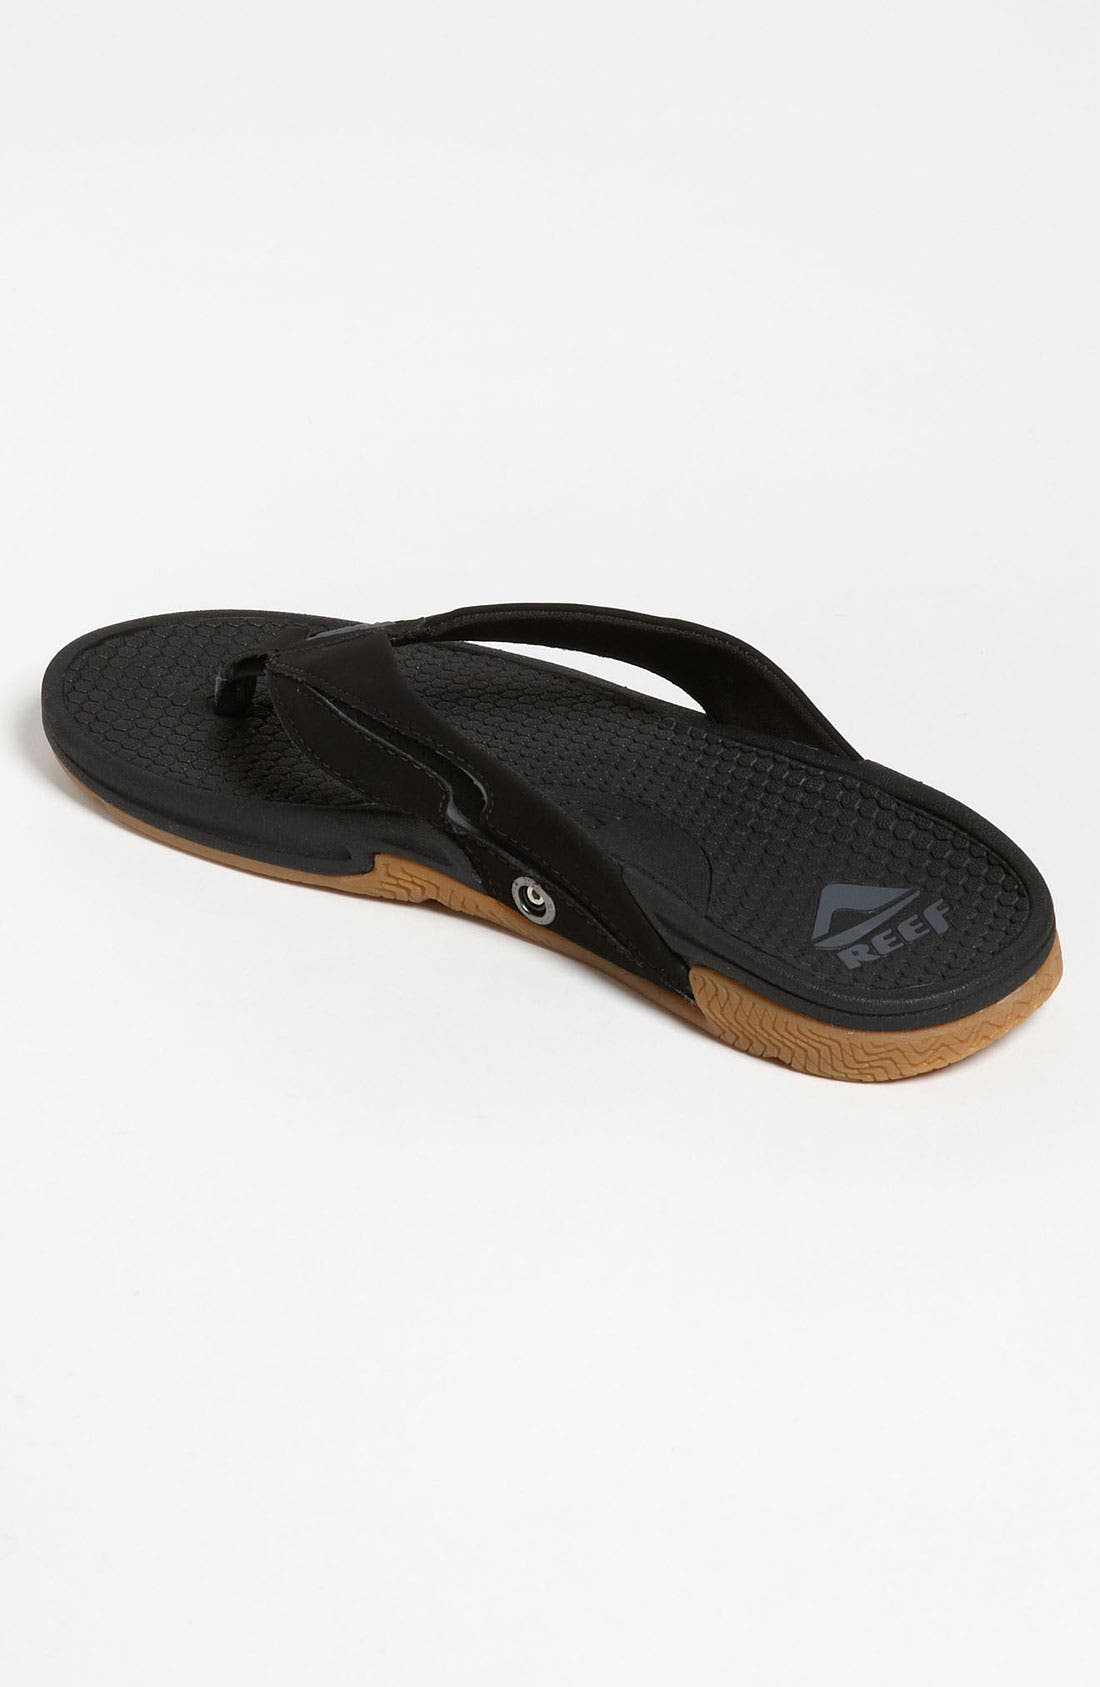 Alternate Image 2  - Reef 'Arch 2' Flip Flop